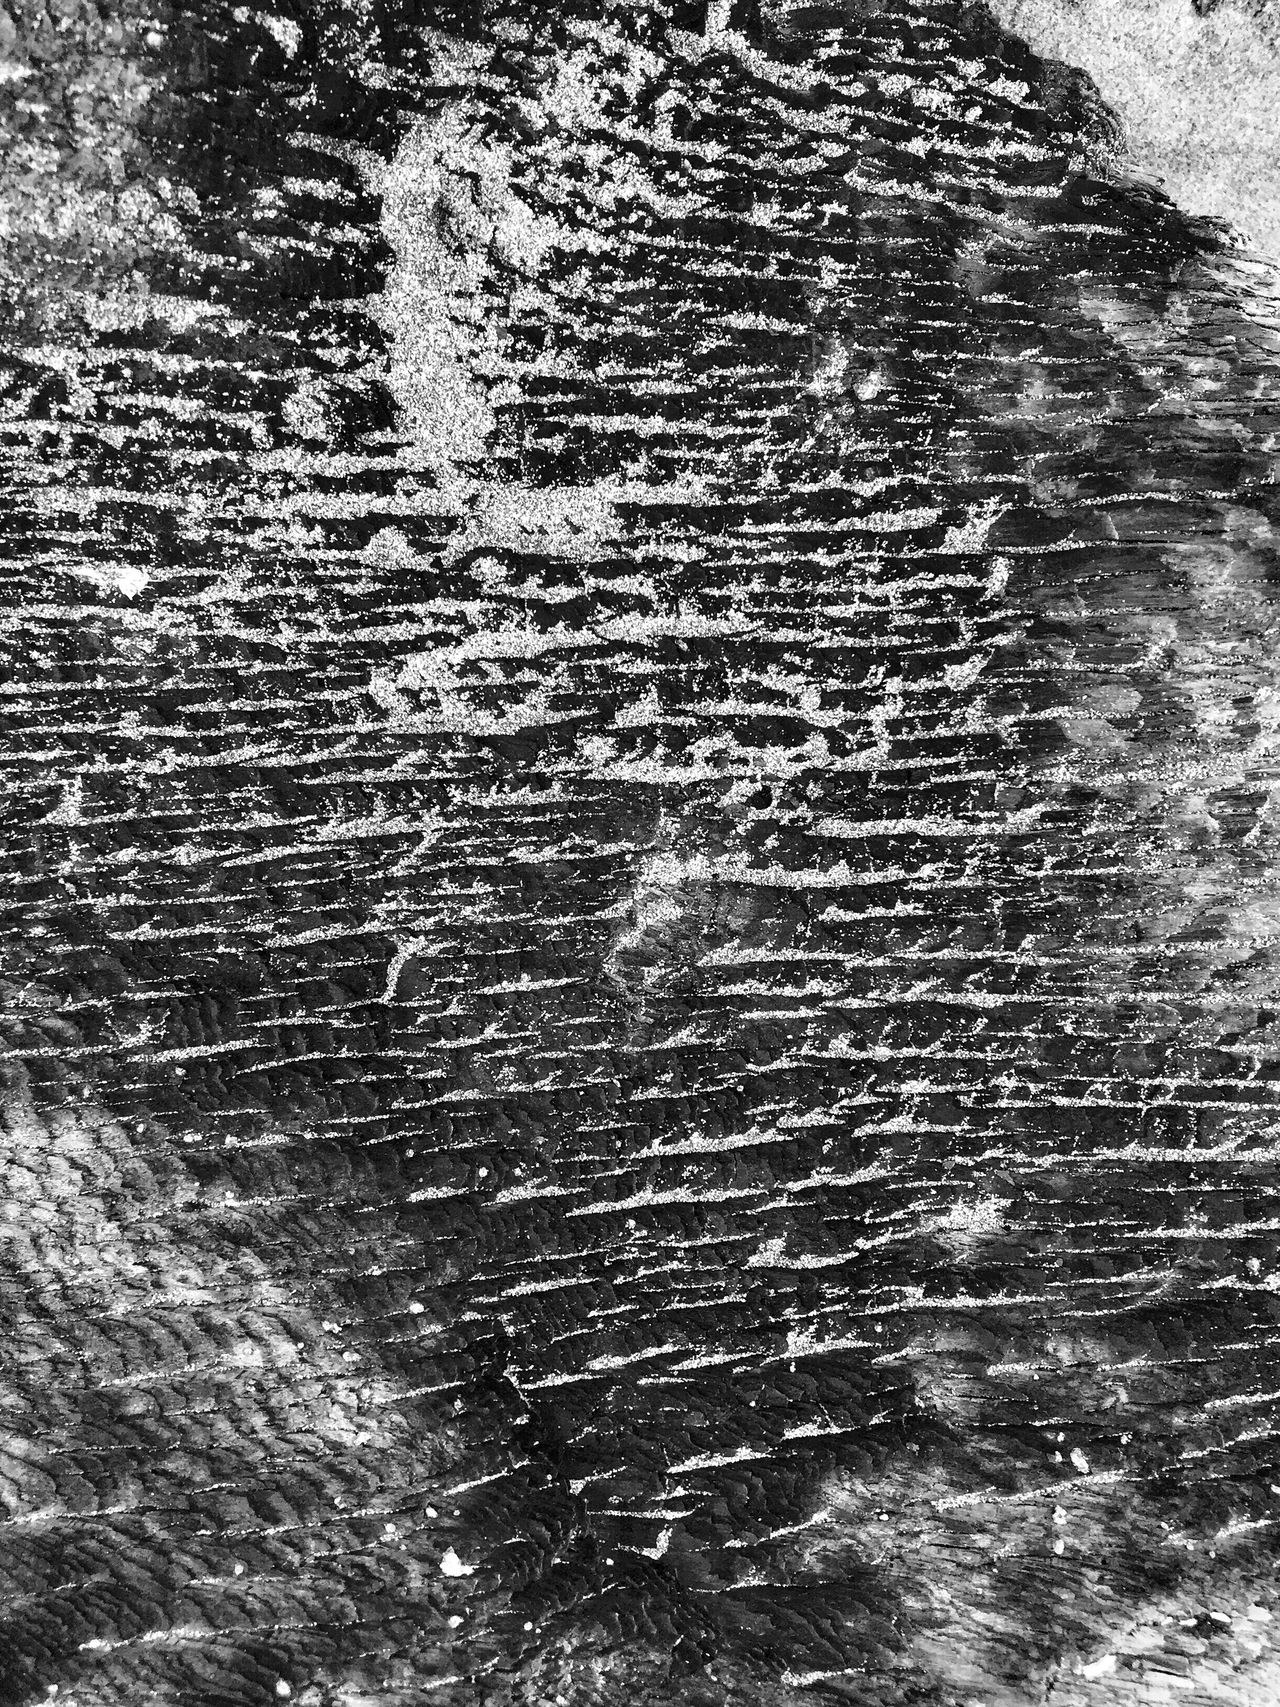 Weathered Textured  Pattern Close-up Outdoors Backgrounds Nature Full Frame Abstractions Beauty In Ordinary Things Naturally Formed Natural Condition Shapes In Nature  Layers And Textures Perspective Views Beauty In Nature Abstract Nature Sand Patterns In Nature Driftwood Designs Natures Diversities Natural Art  Patterns